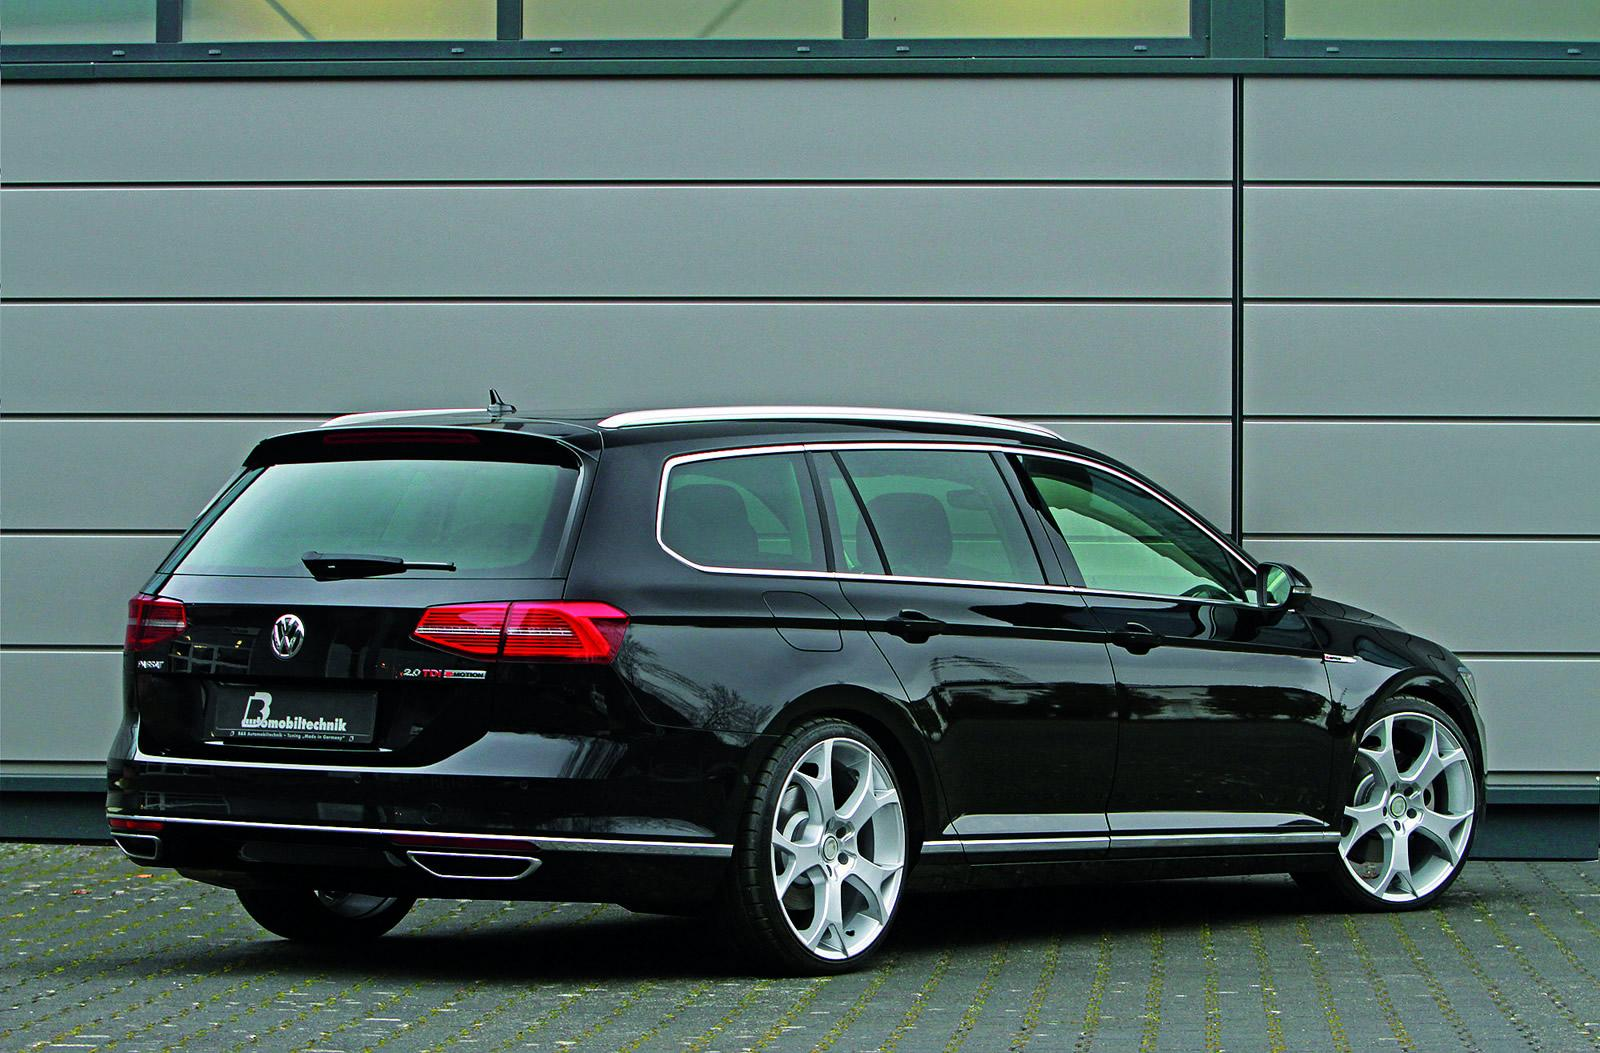 2015 Volkswagen Passat 2.0 BiTDI Tuned to 300 HP: B8 Torque Monster ...